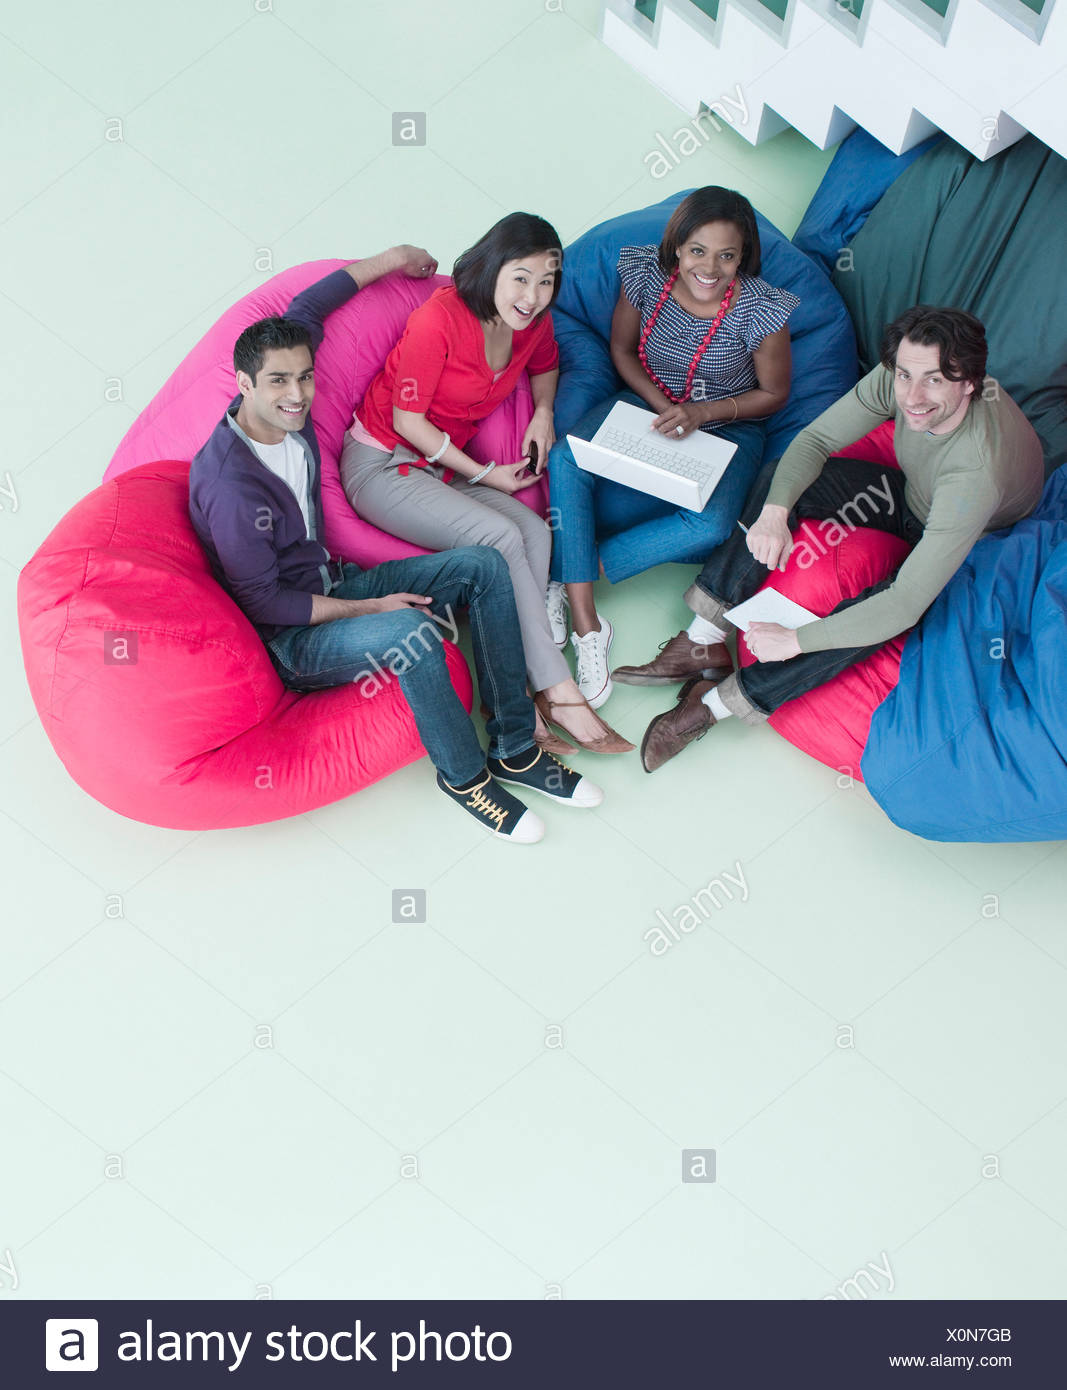 Smiling business people sitting in bean bag chairs - Stock Image